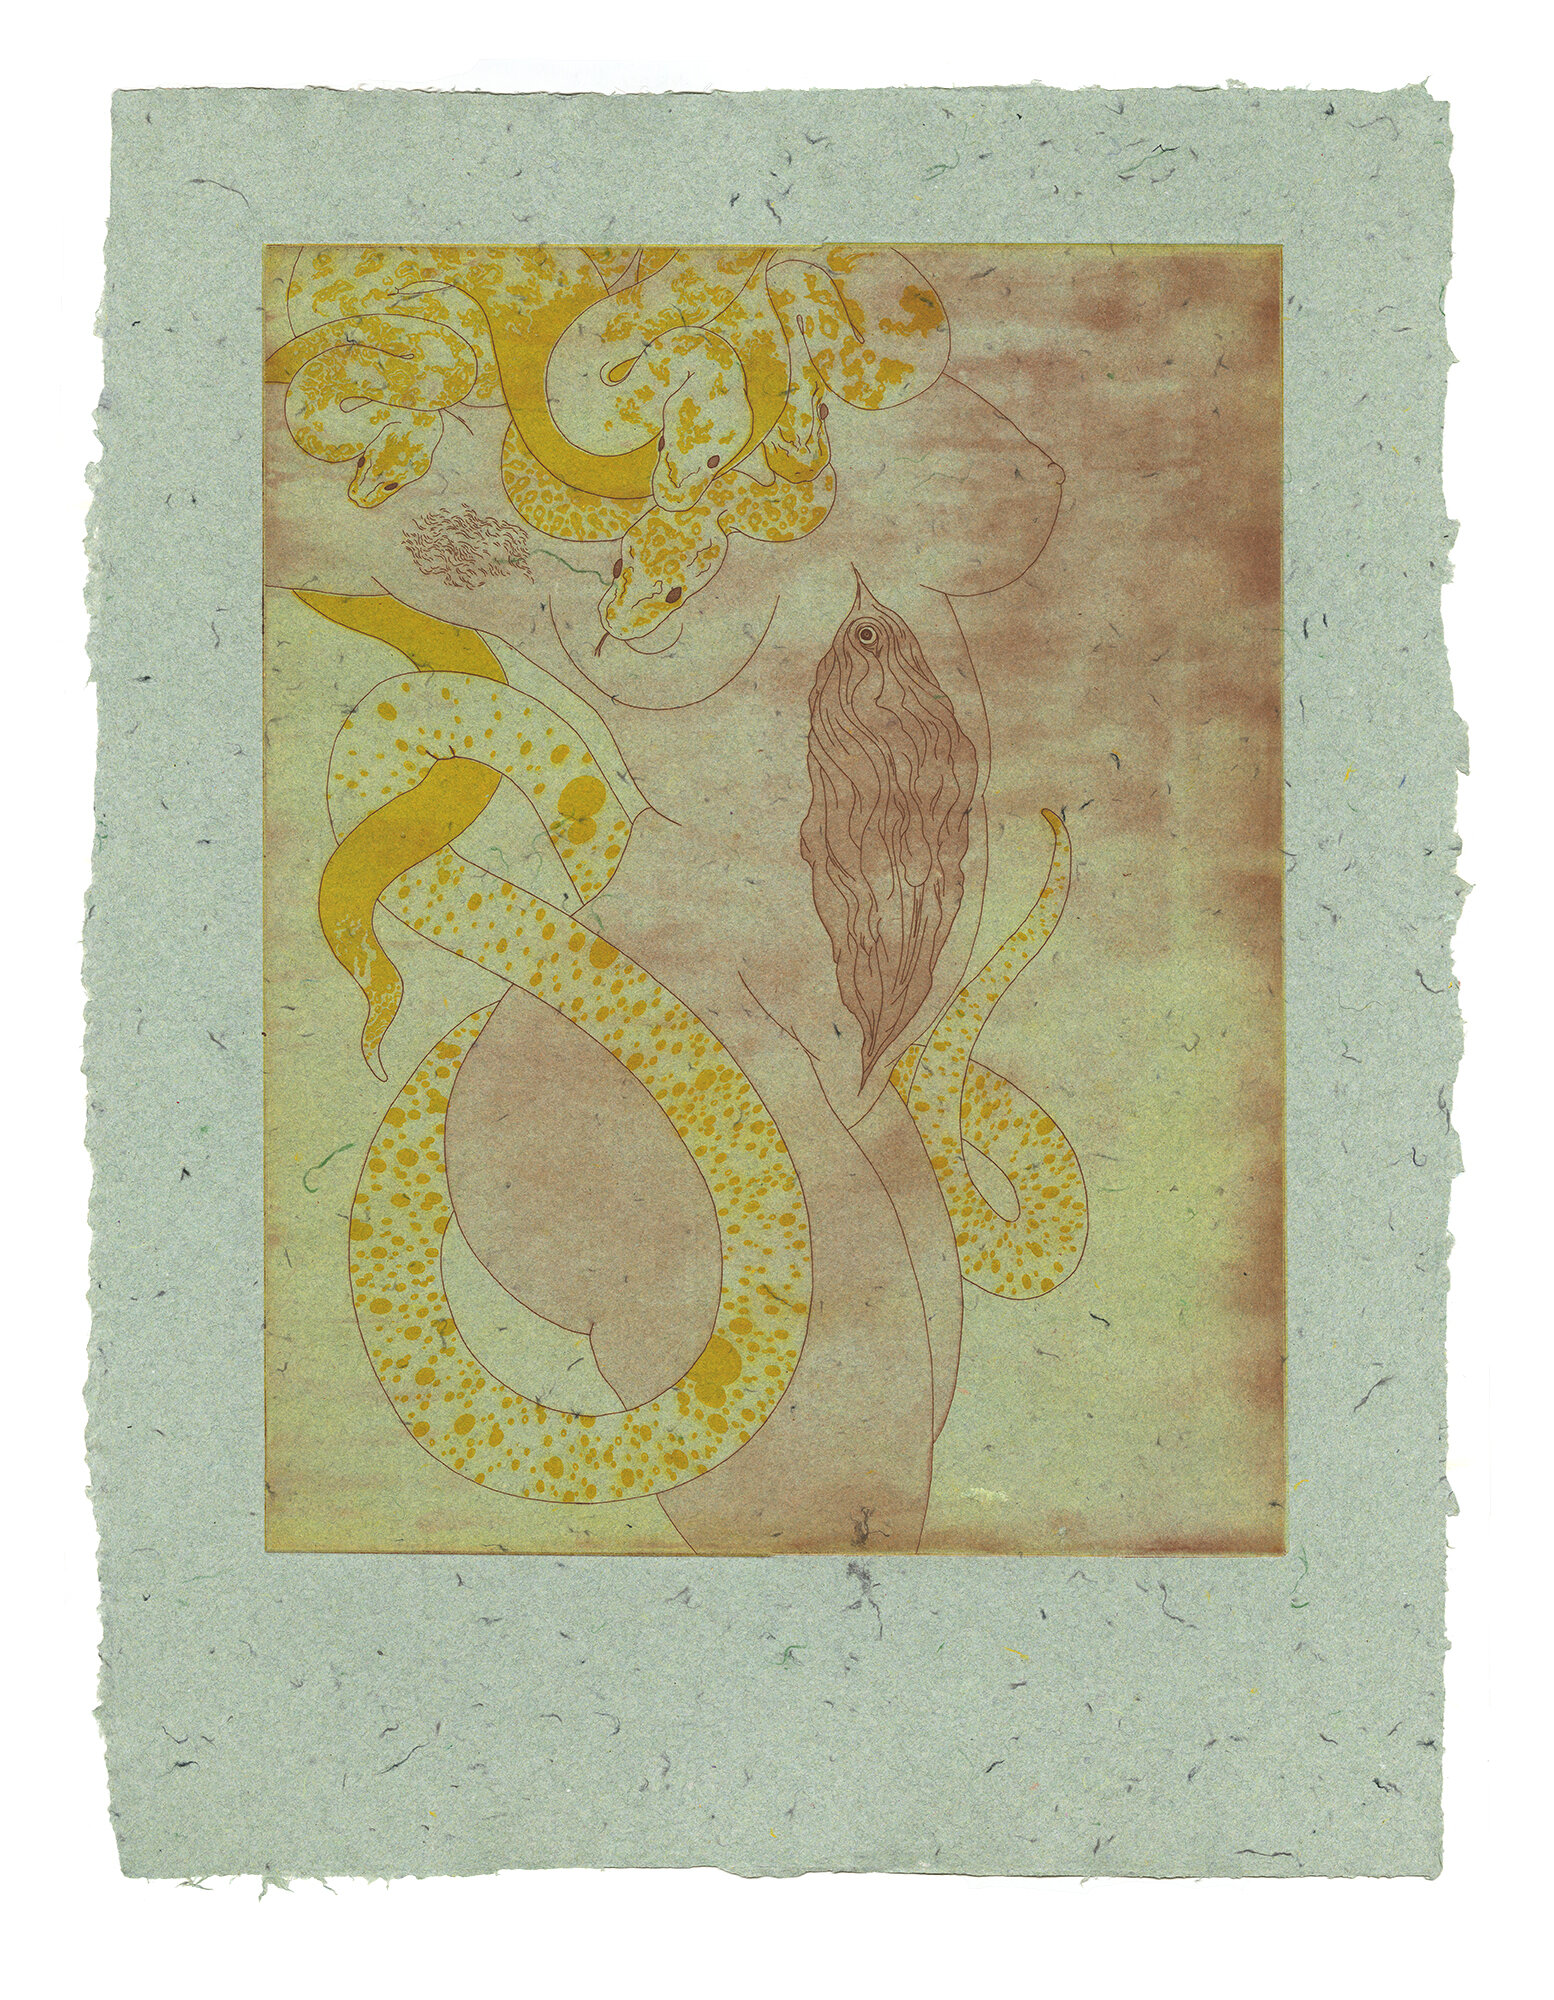 Serpent      etching on handmade paper {edition of 4} 24 x 18 inches HAD 009G